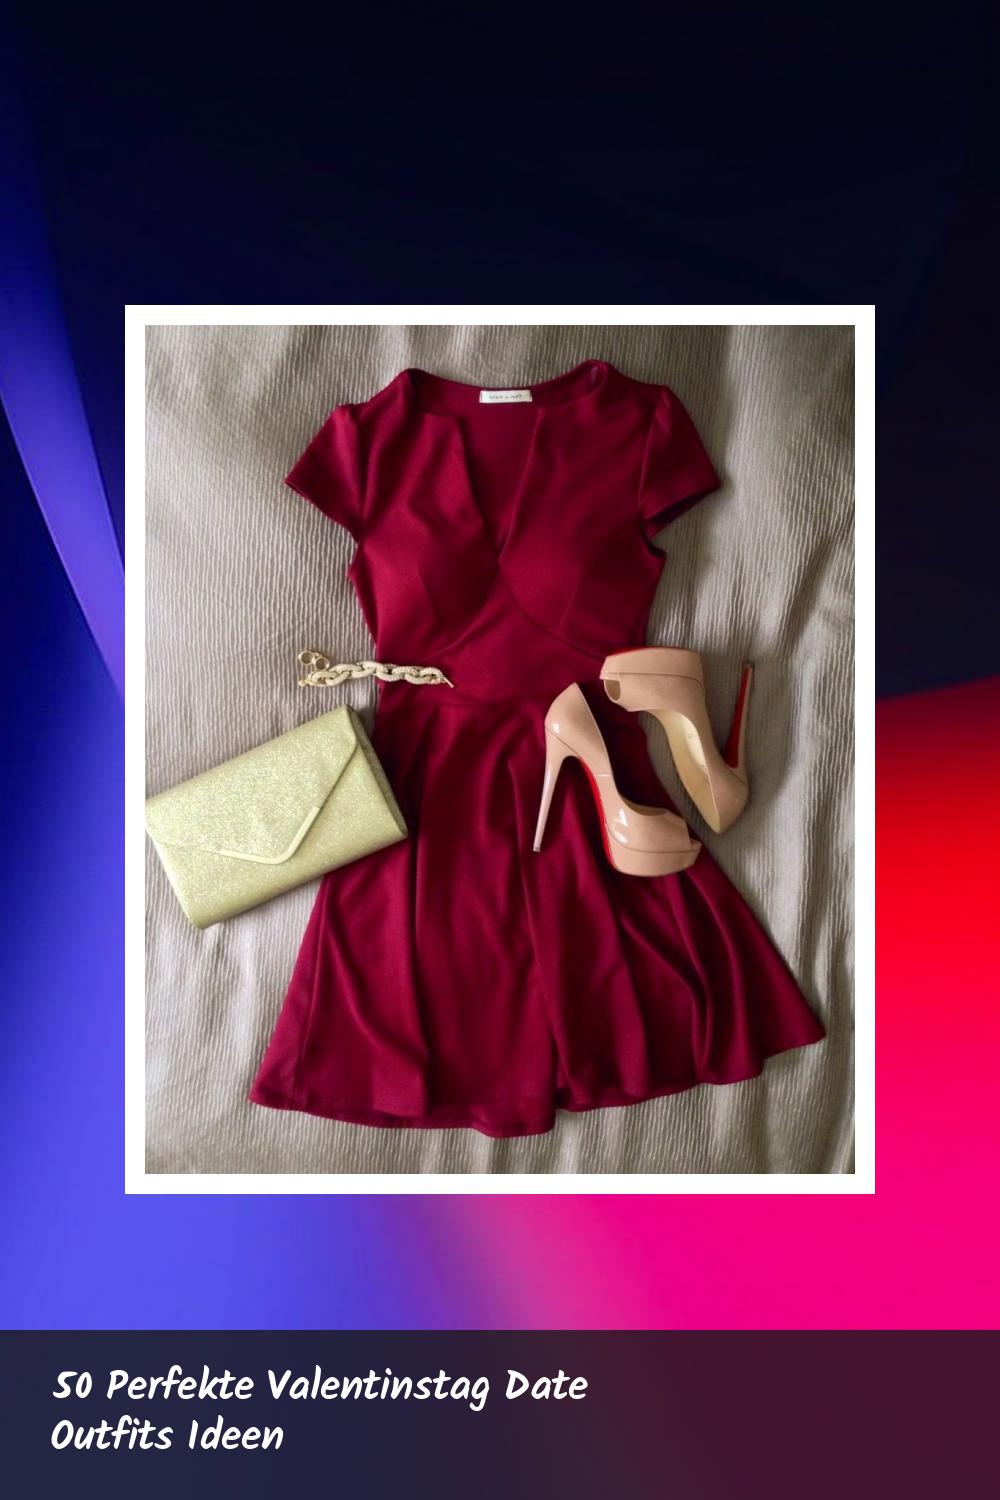 50 Perfekte Valentinstag Date Outfits Ideen 6